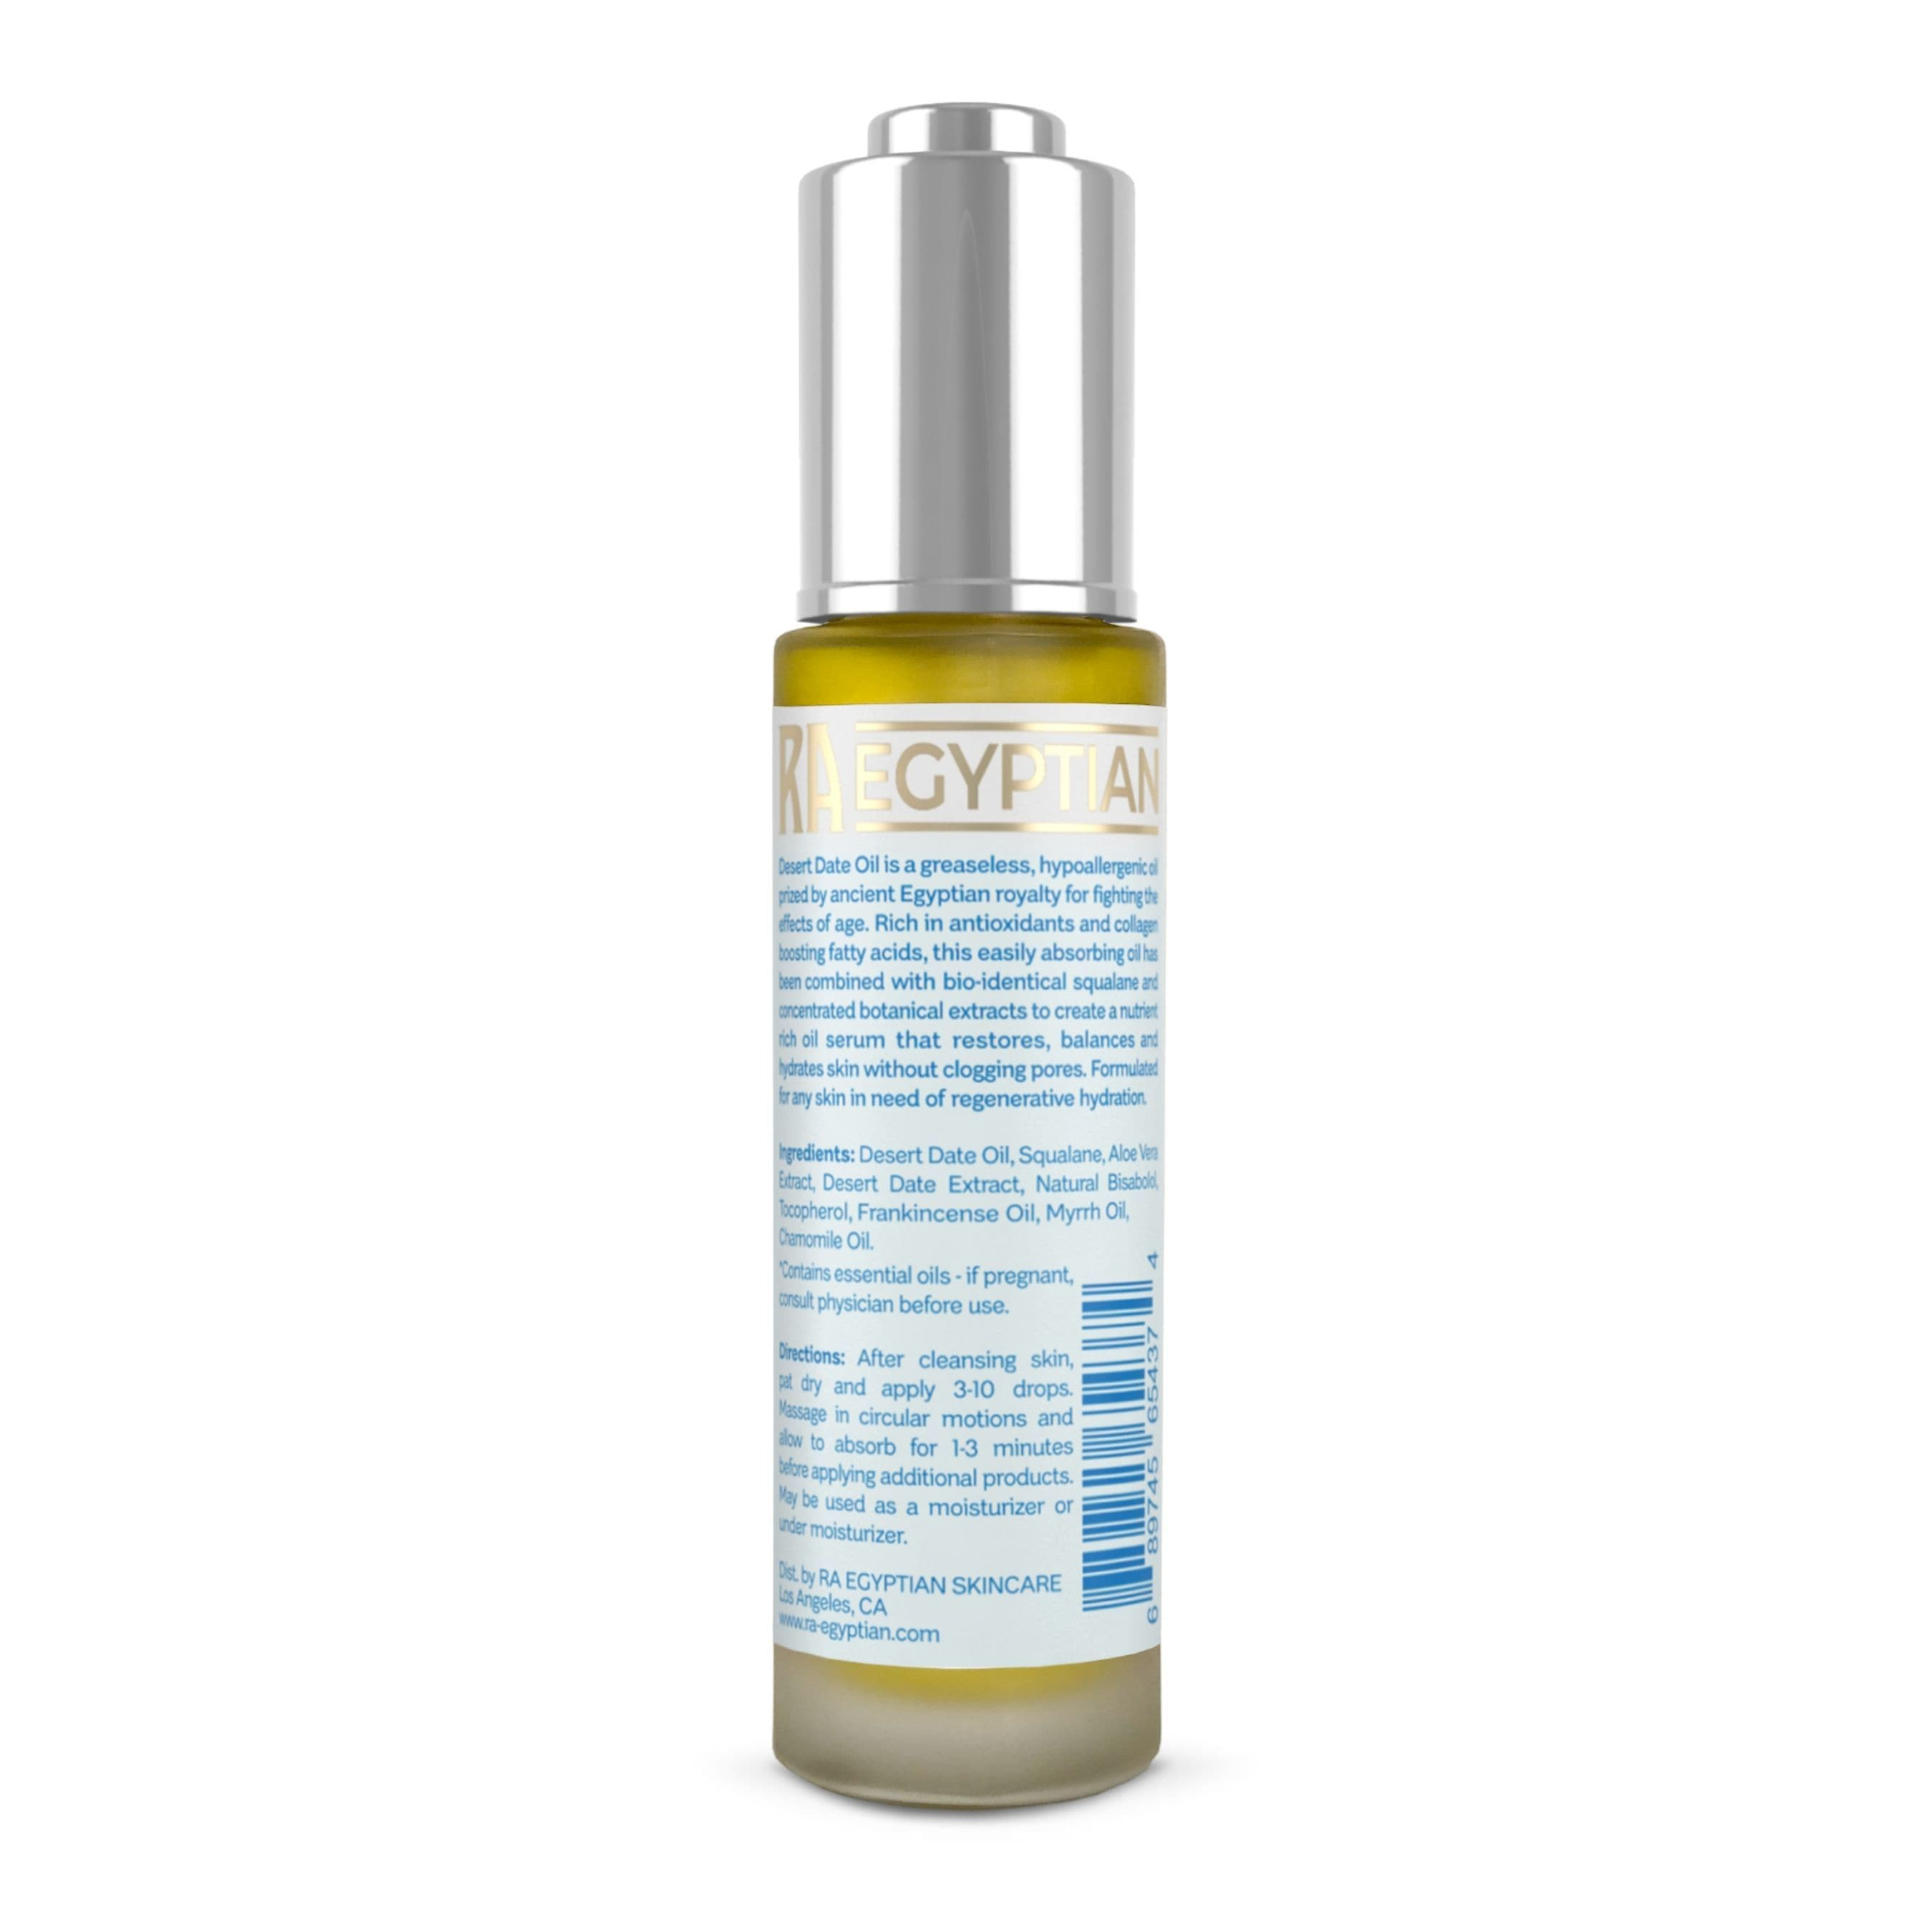 Desert Date Oil Serum - RA EGYPTIAN